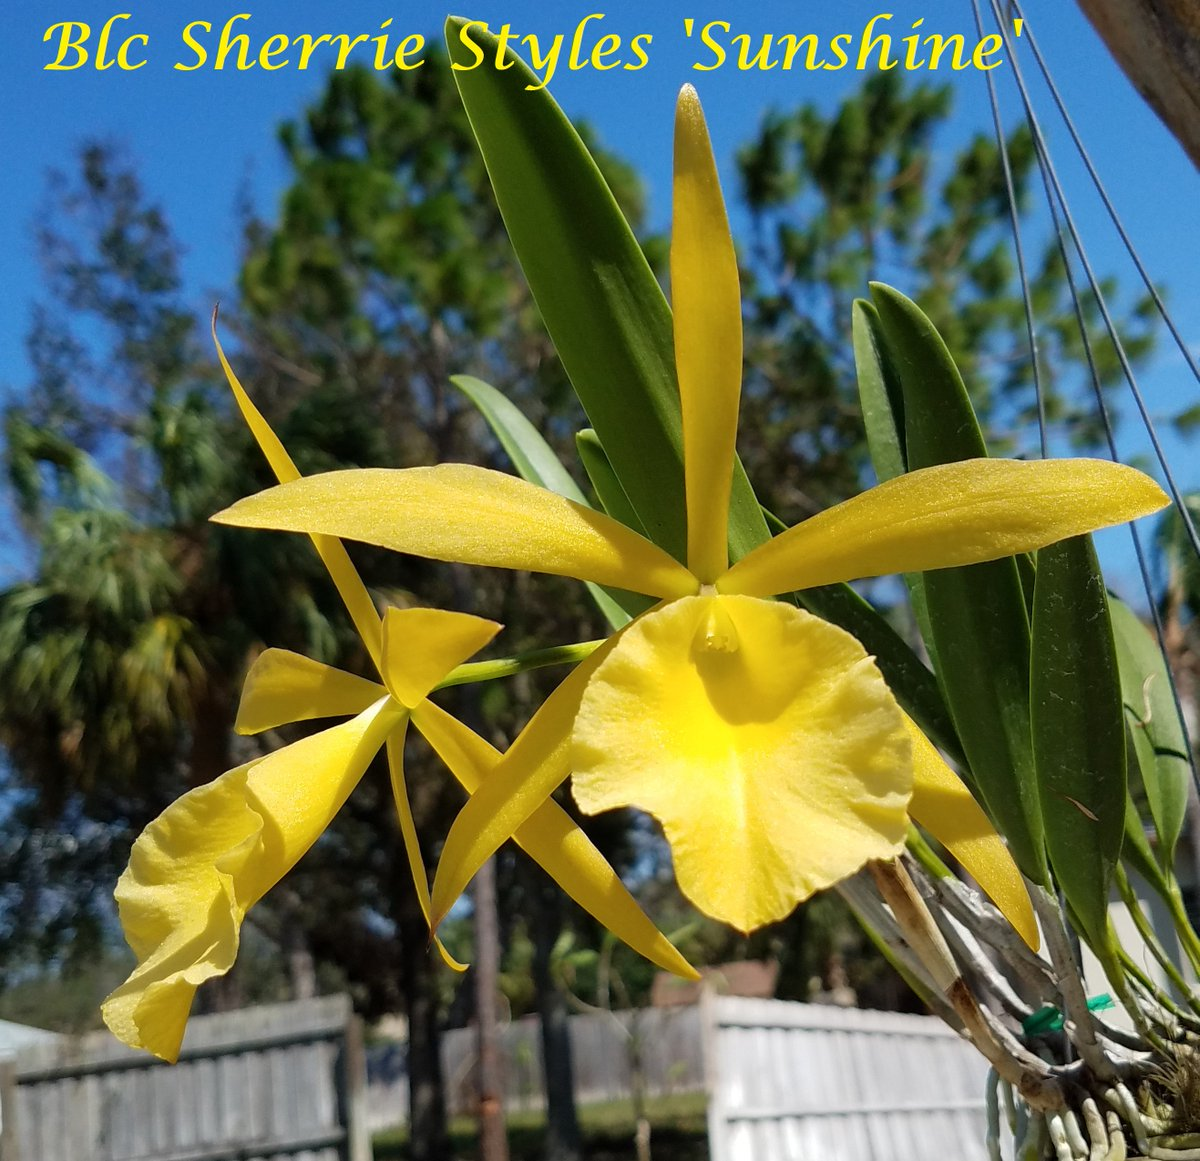 This beauty is in a 4 inch basket and the flowers are huge compared to the plant! #orchids, #brassavola, #flowers, #cattleya<br>http://pic.twitter.com/KxMUZpRJjf